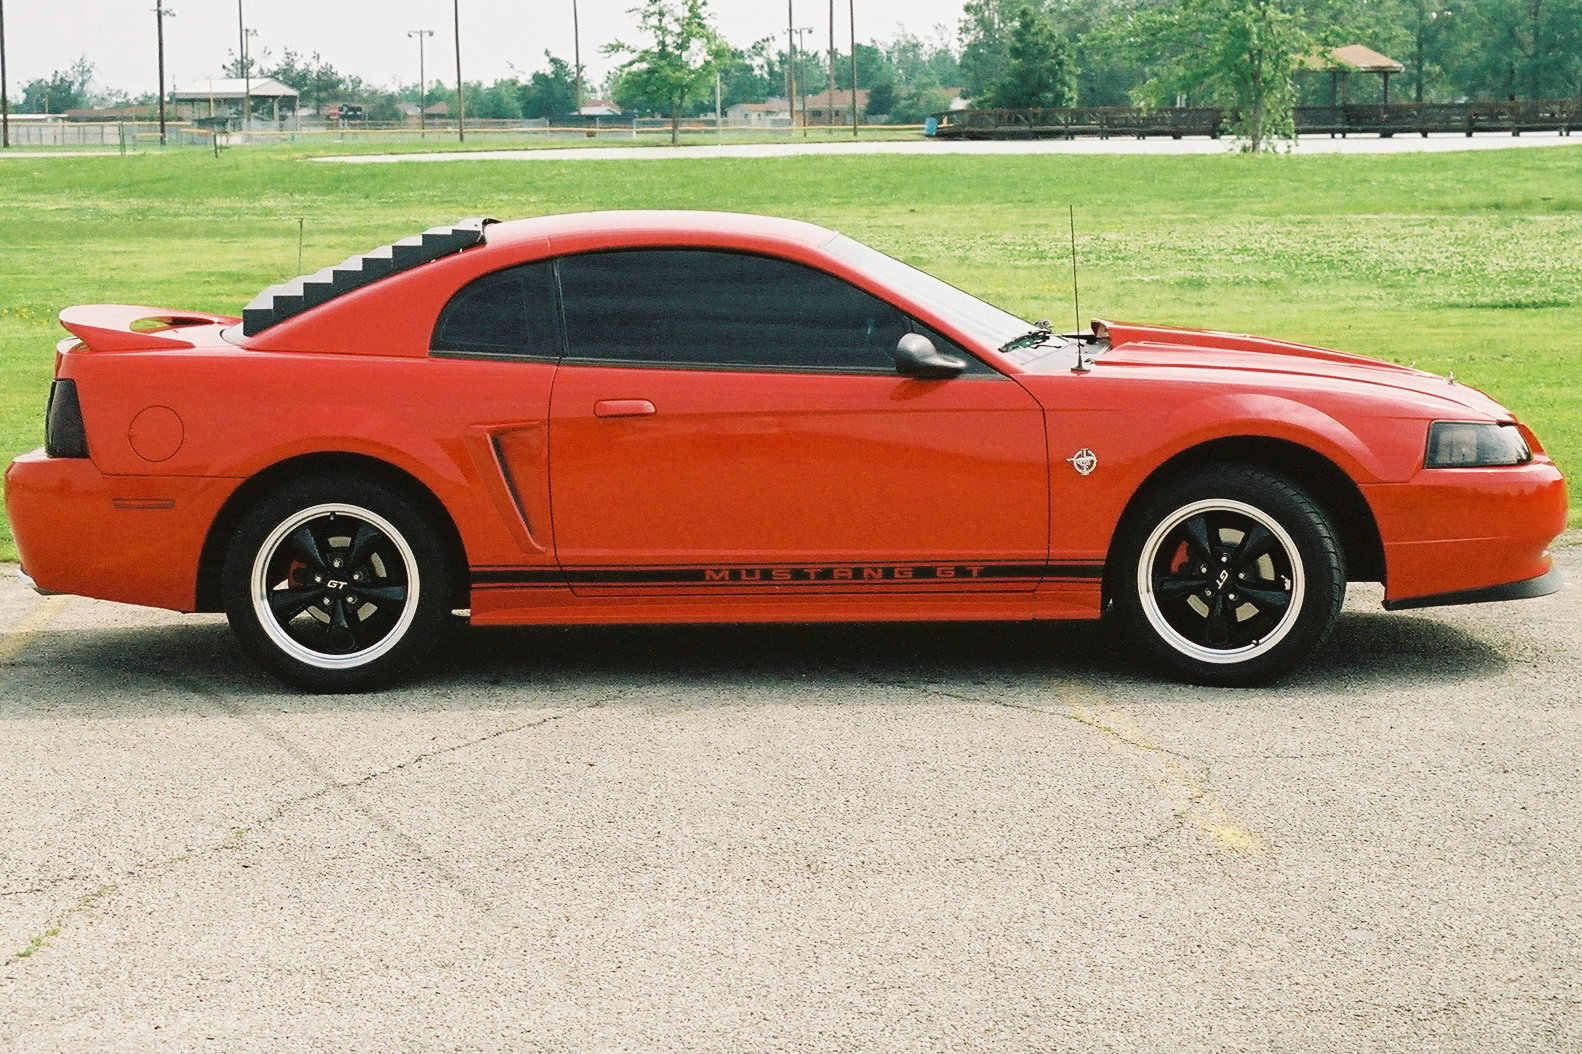 Original Mustang Shelby >> KevinJ95 1999 Ford Mustang Specs, Photos, Modification Info at CarDomain